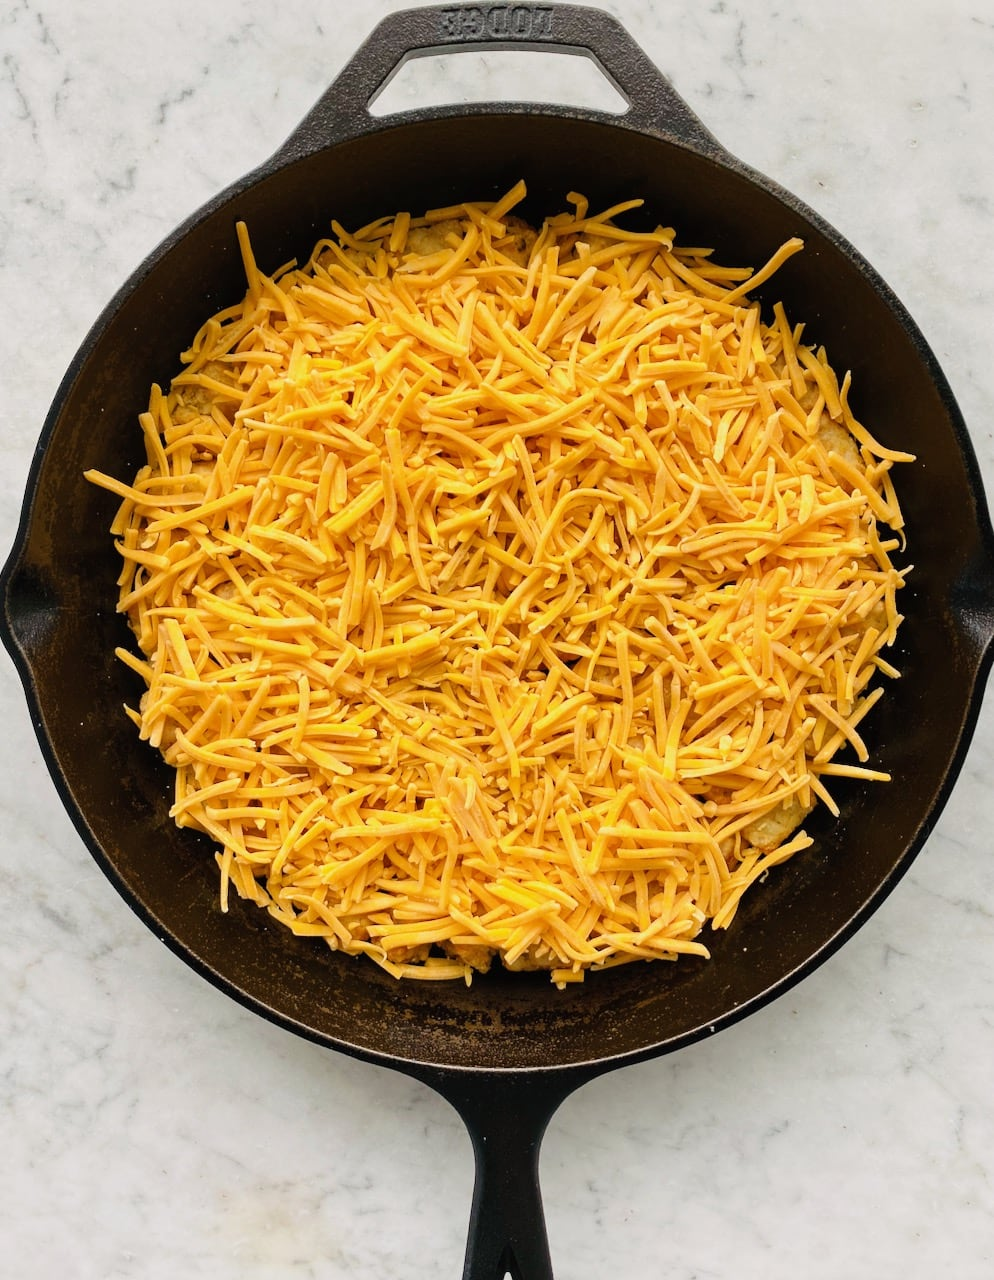 layer of cheese in a cast iron skillet